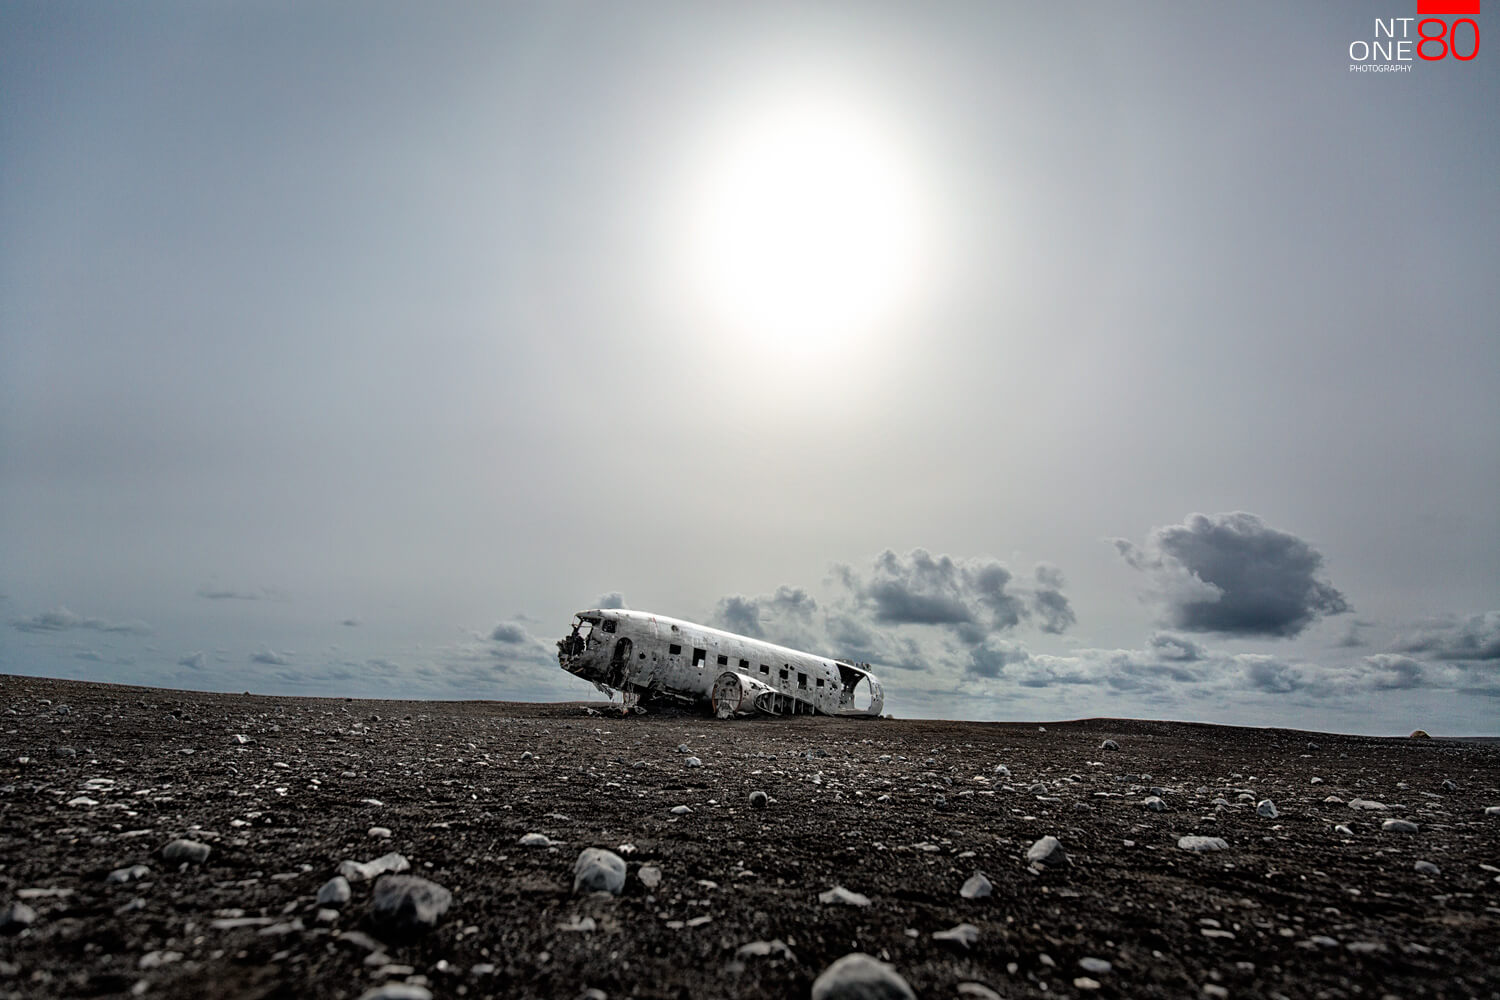 Crashed DC3 Iceland